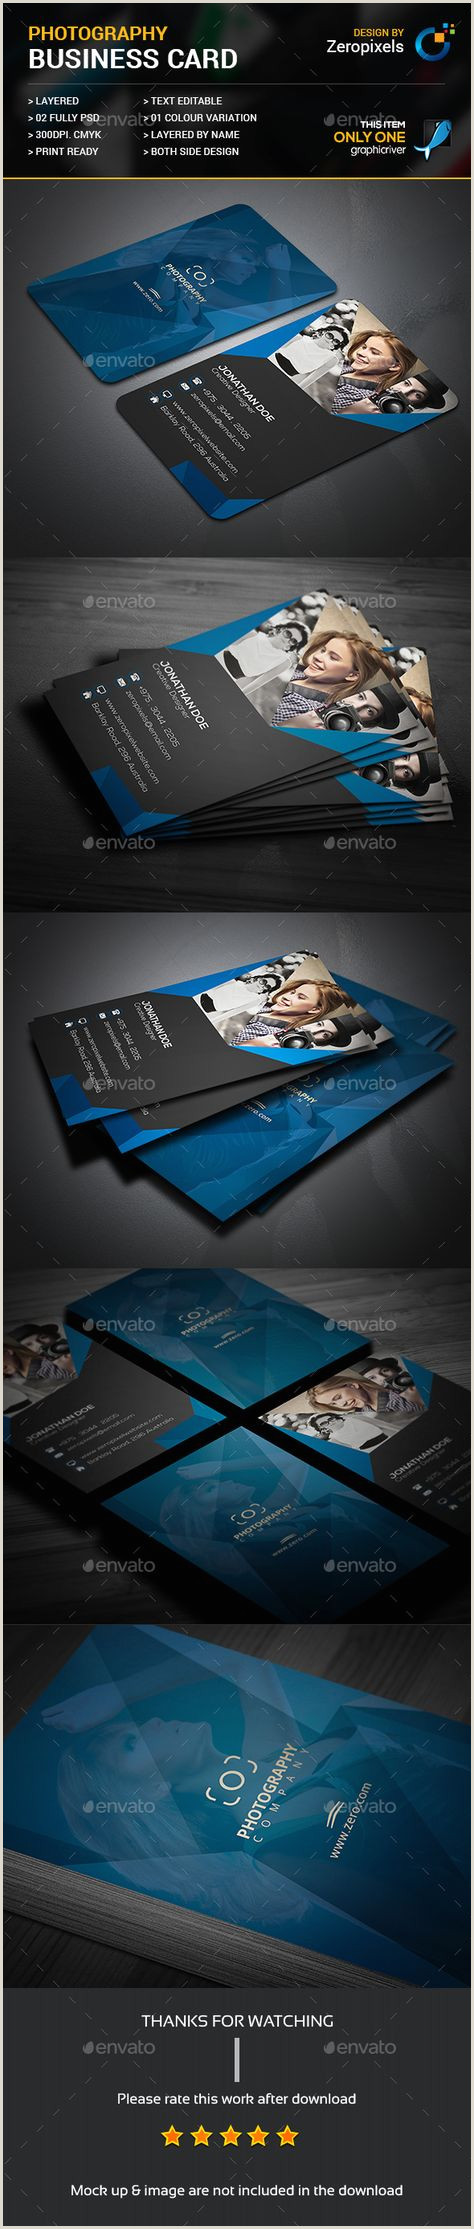 Advertising Agency Business Cards Graphy Business Cards Template Free 70 Trendy Ideas